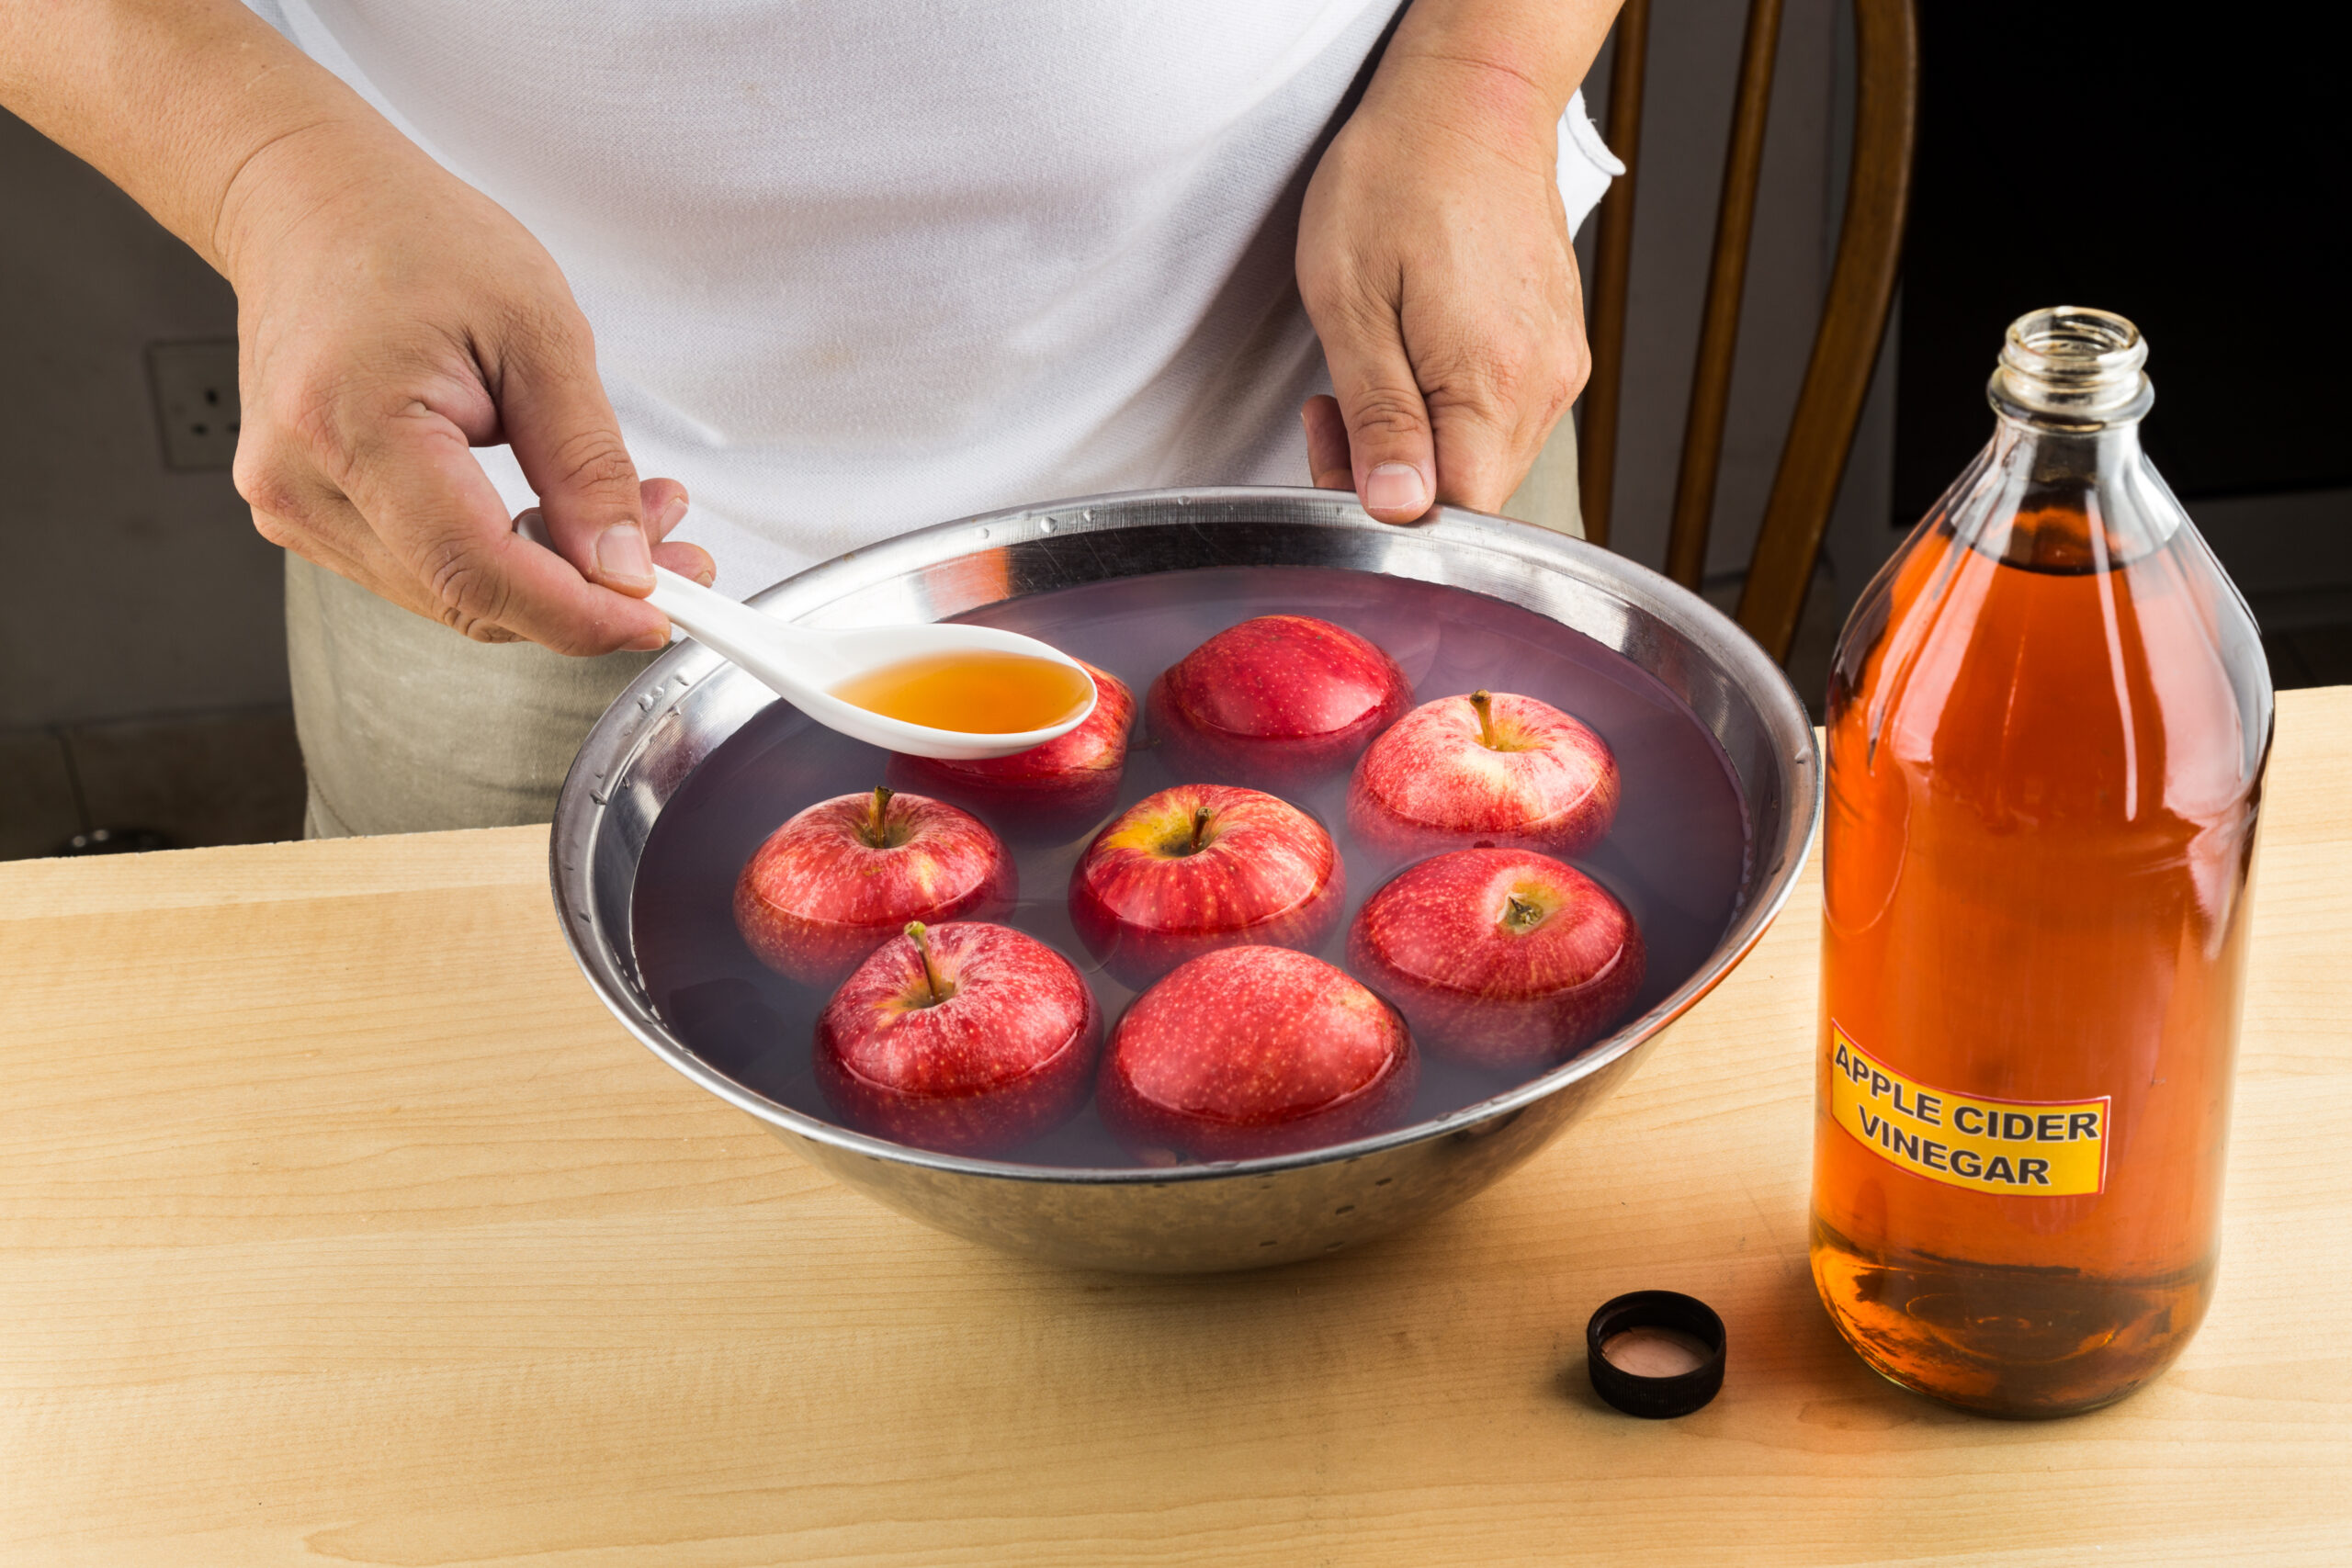 How to: Cider